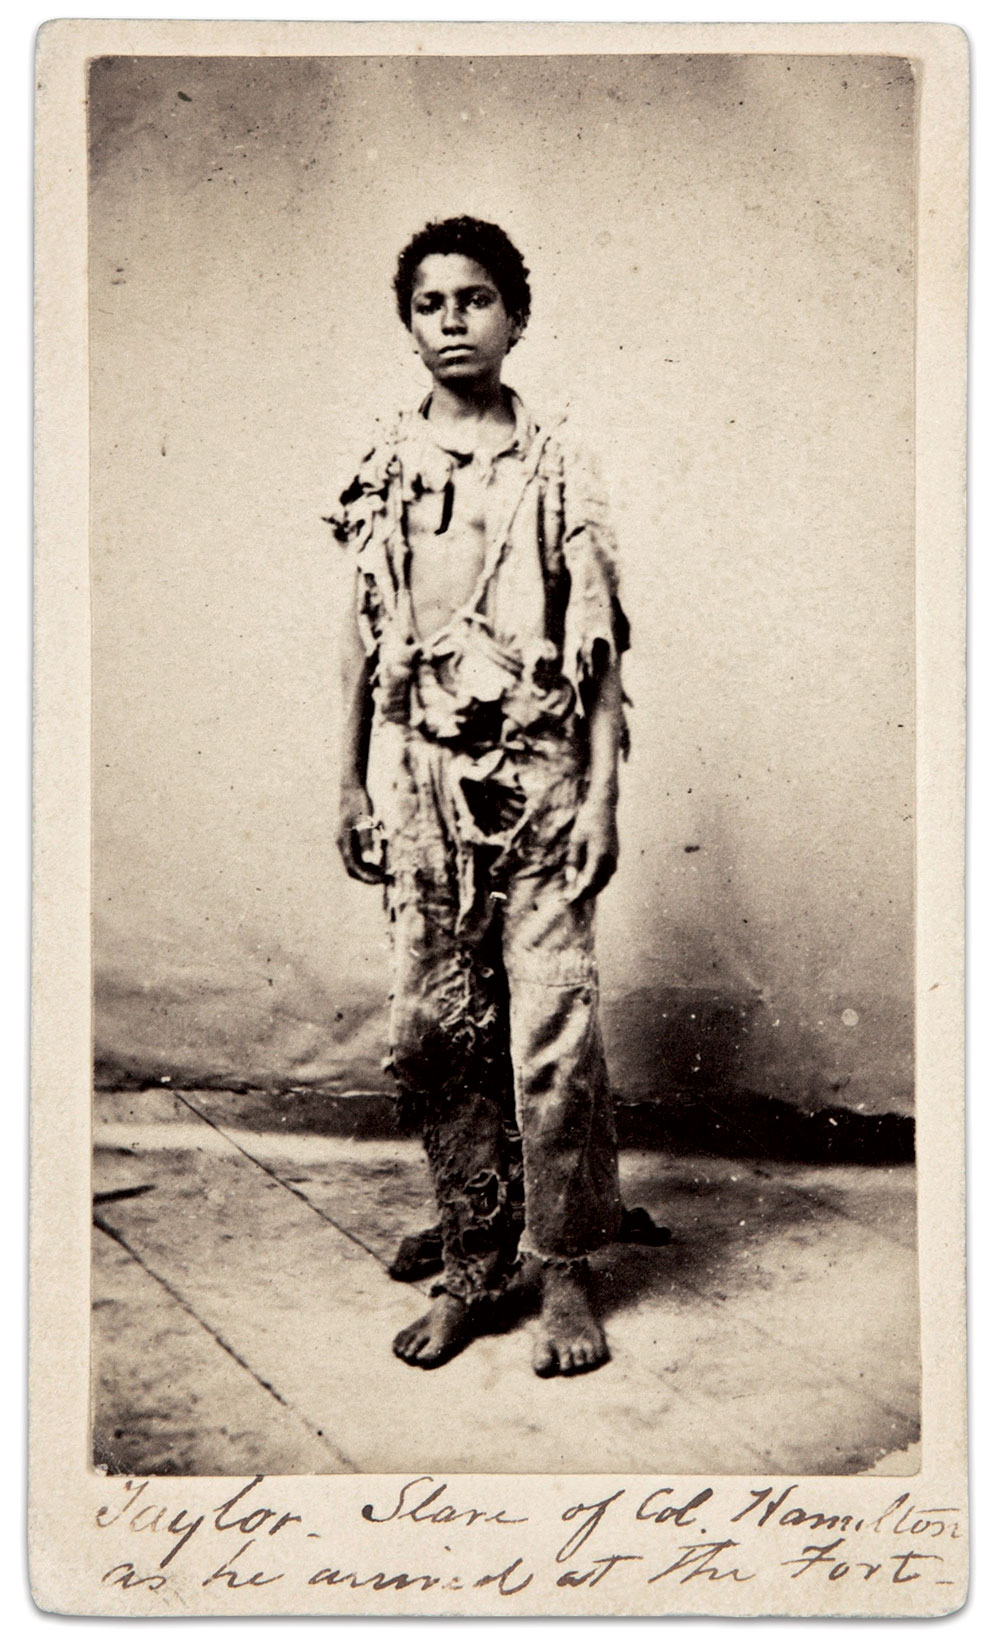 """This carte de visite in the Beinecke Library at Yale University includes a unique period ink inscription: """"Taylor — Slave of Col. Hamilton as he arrived at the Fort."""""""